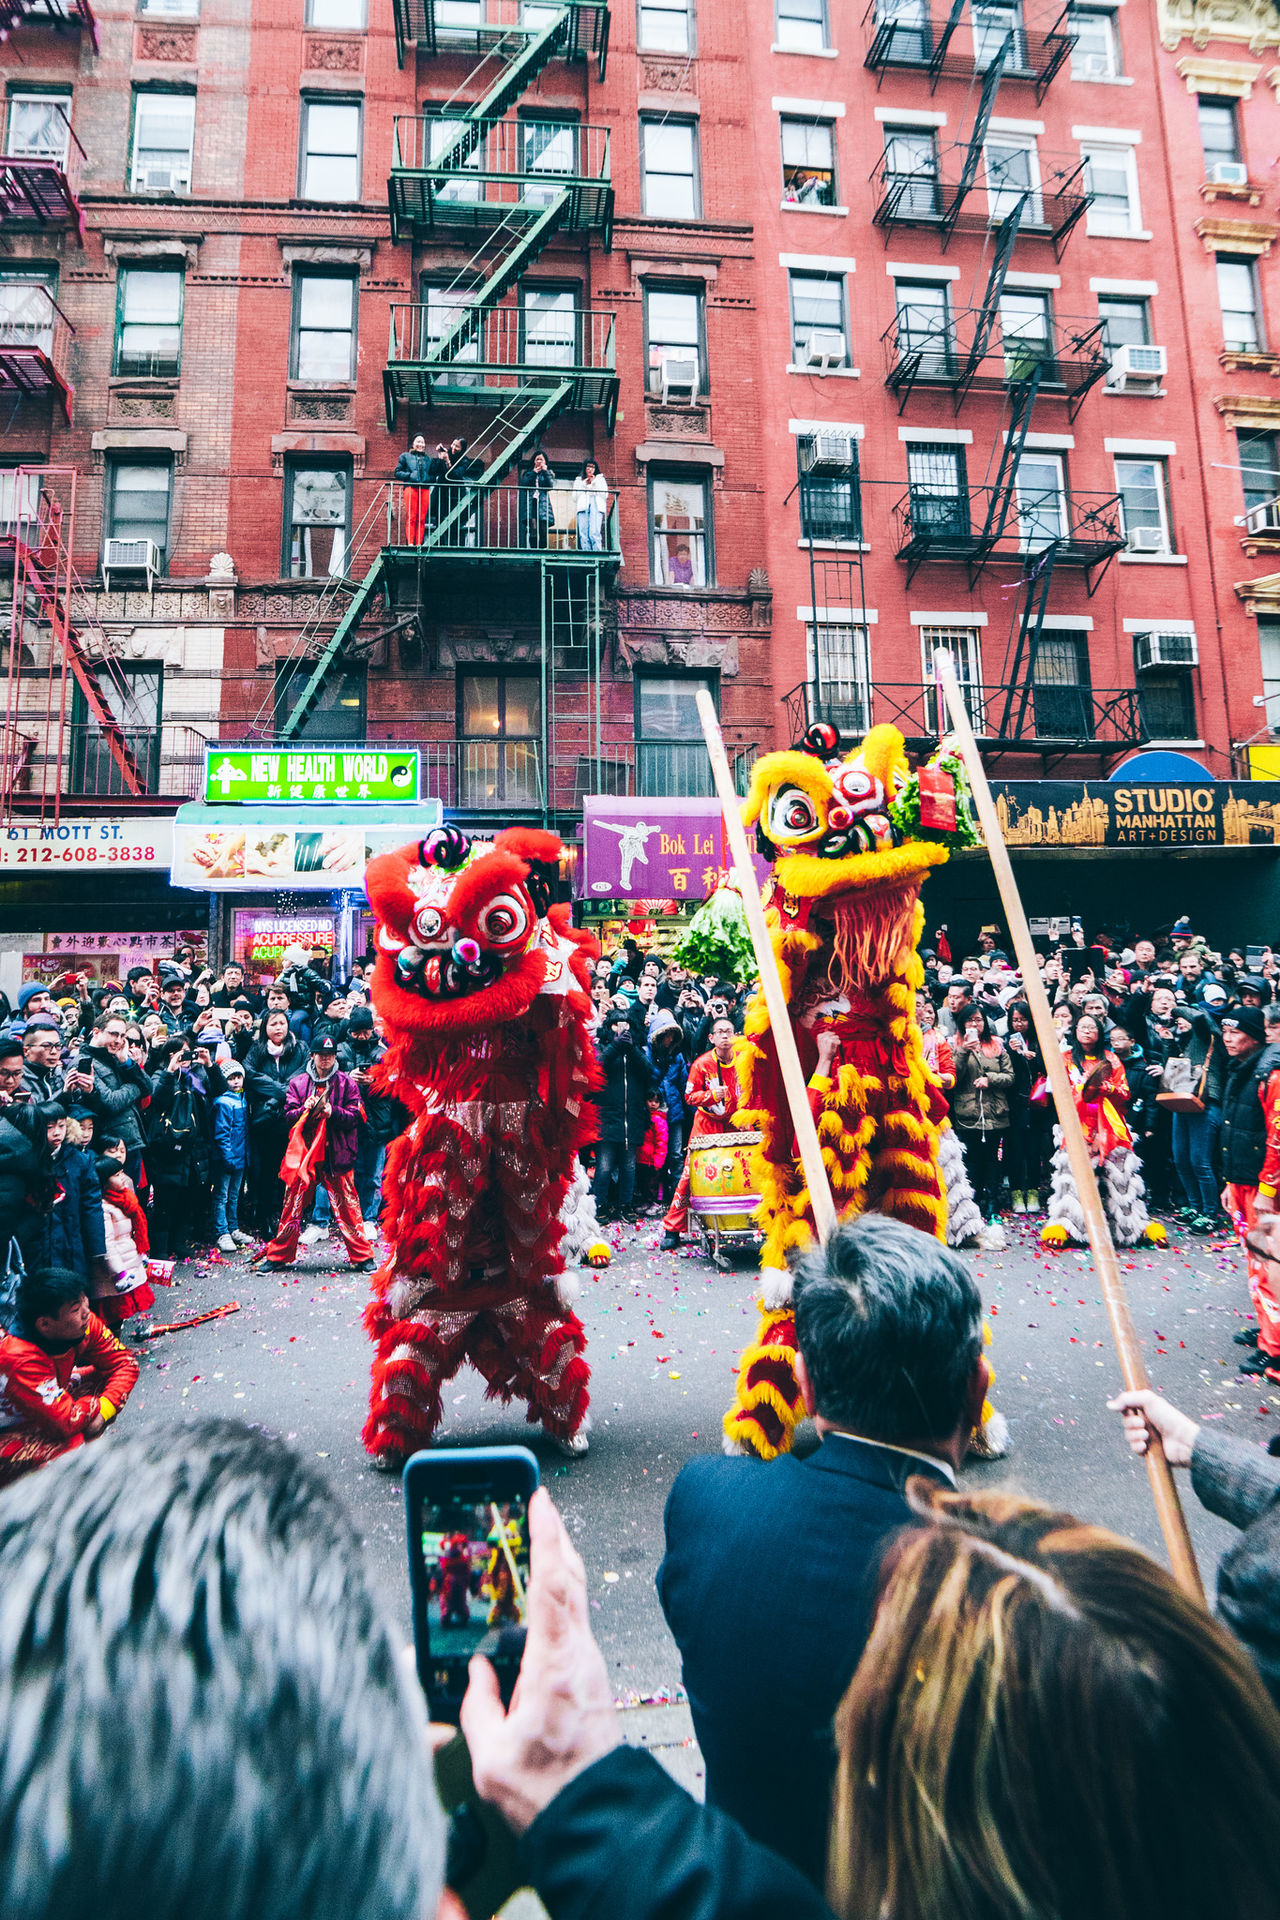 Beautiful stock photos of clown, celebration, cultures, chinese new year, men